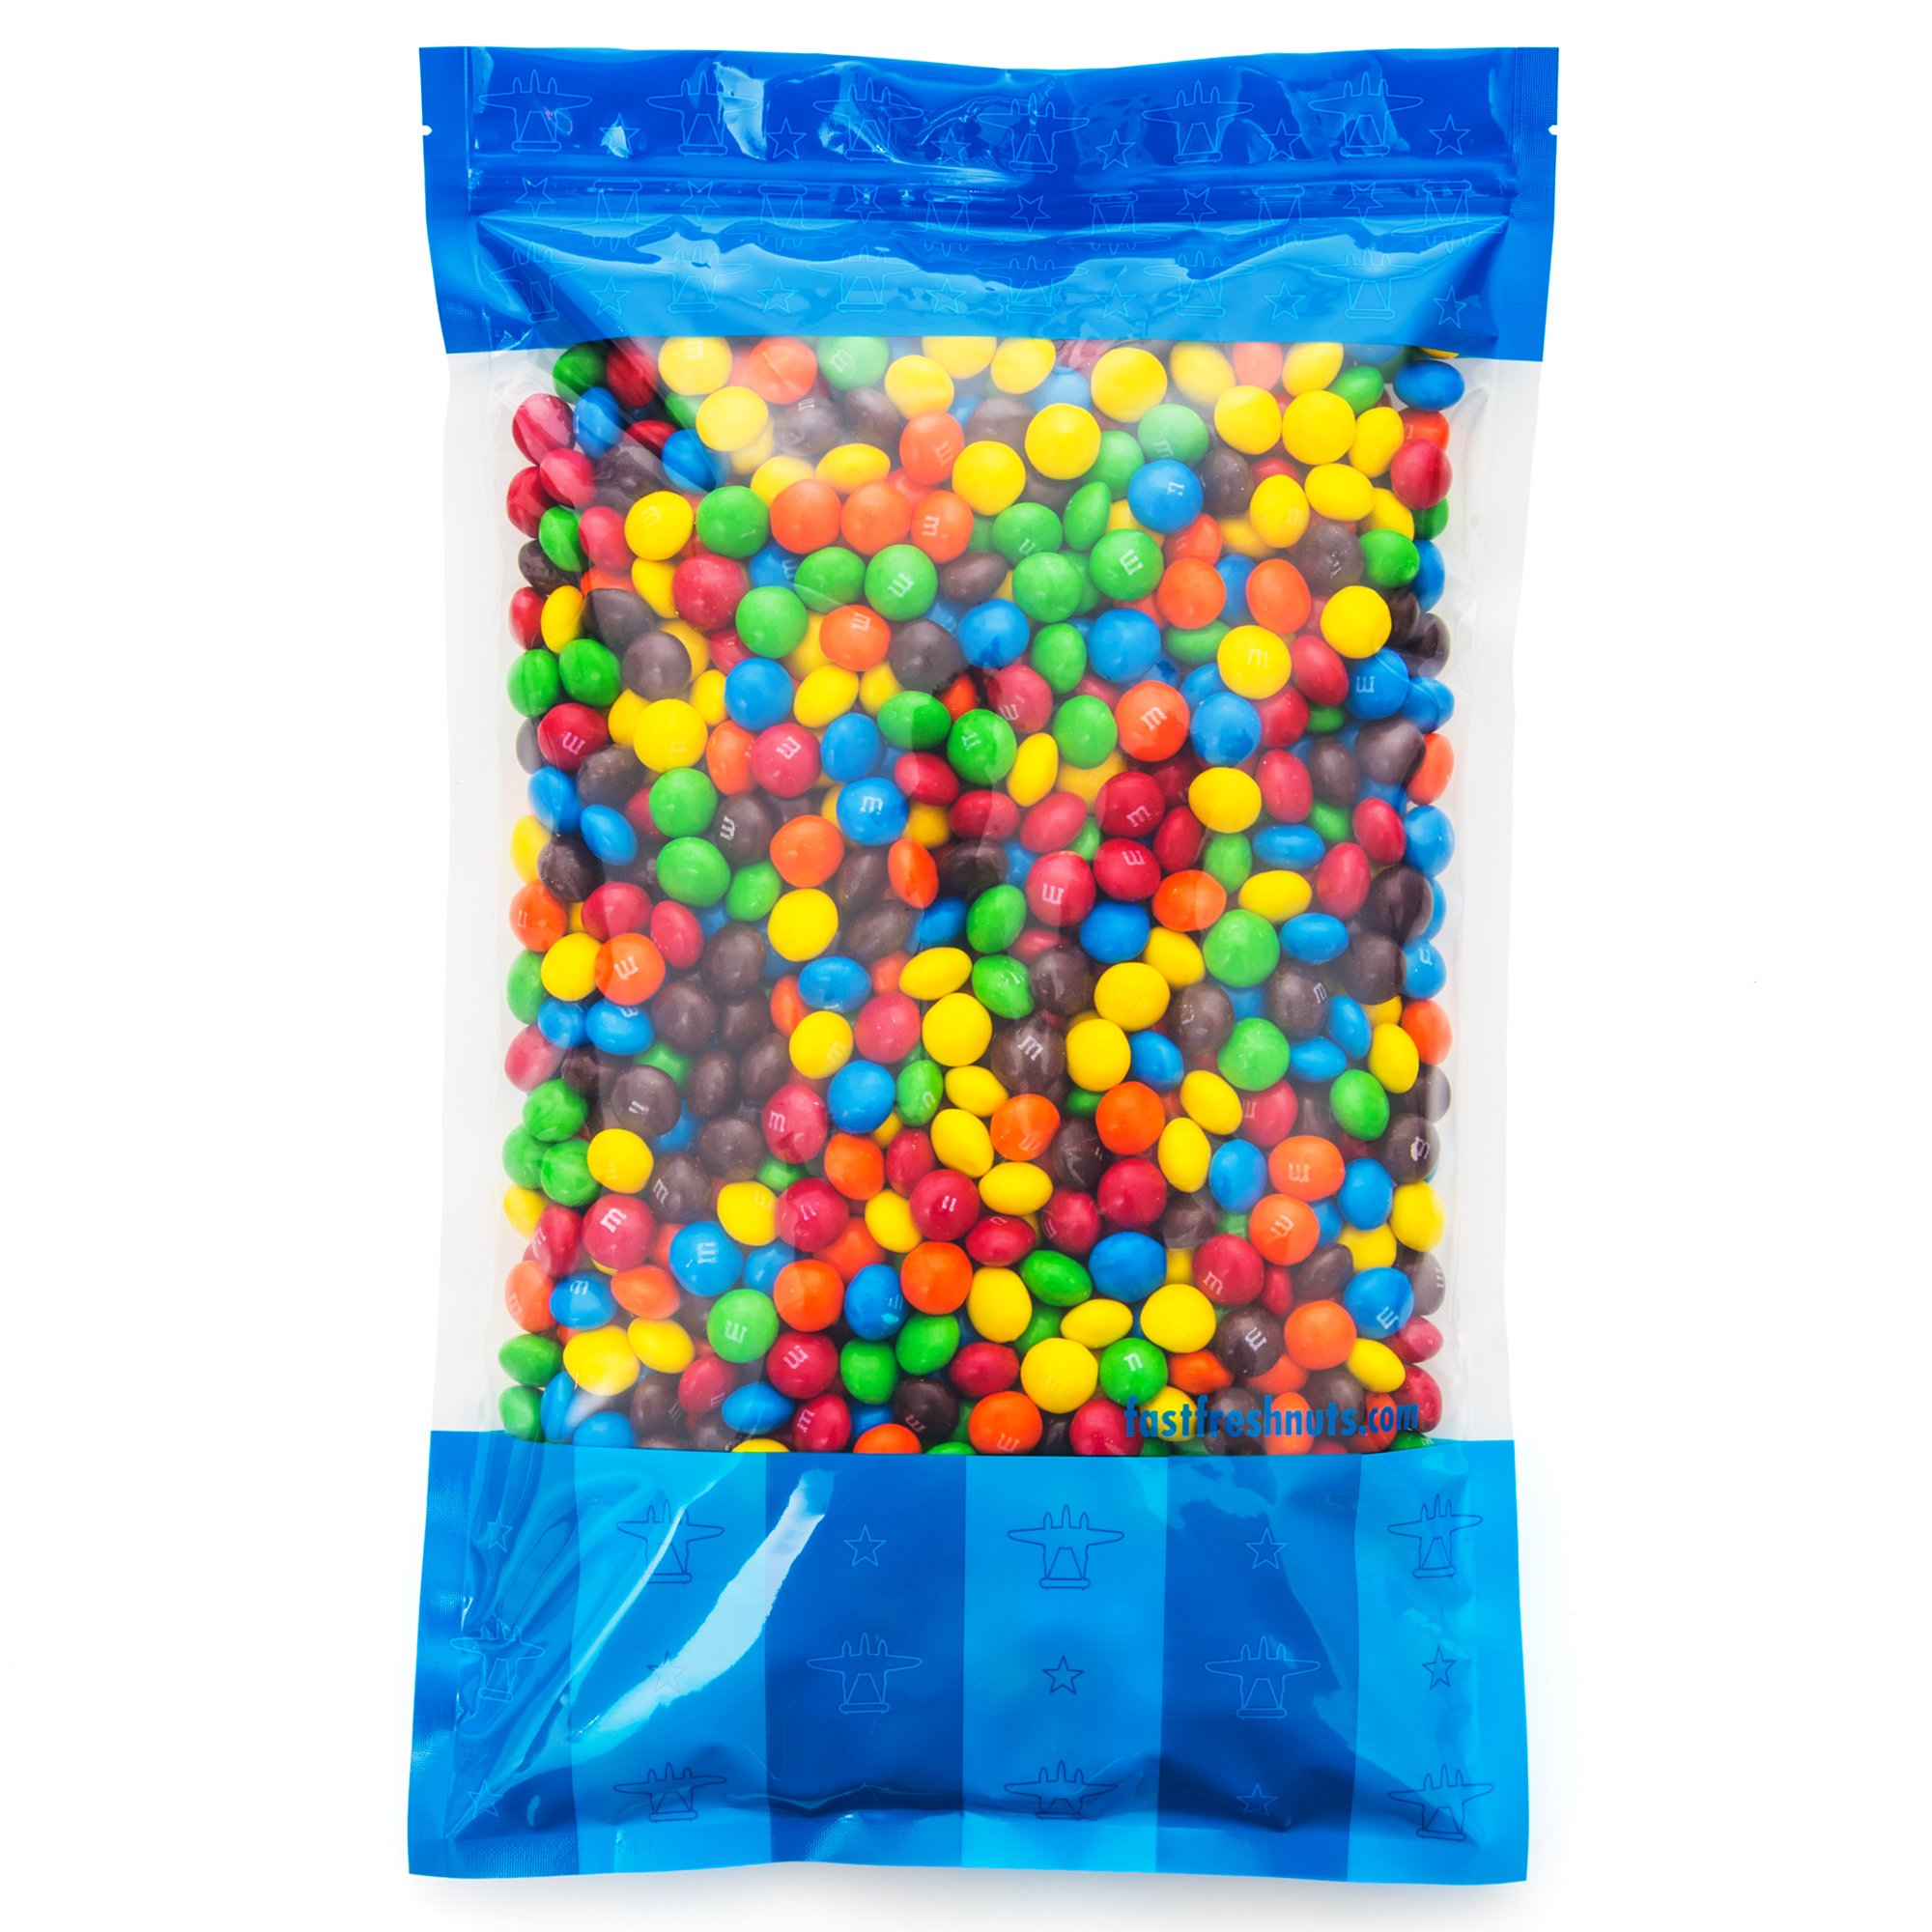 Bulk M&M's Plain Milk Chocolate in a Bomber® Bag - 5 lbs - Fresh, Tasty Treats - Resealable Bag by Fast Fresh Nuts (Image #1)